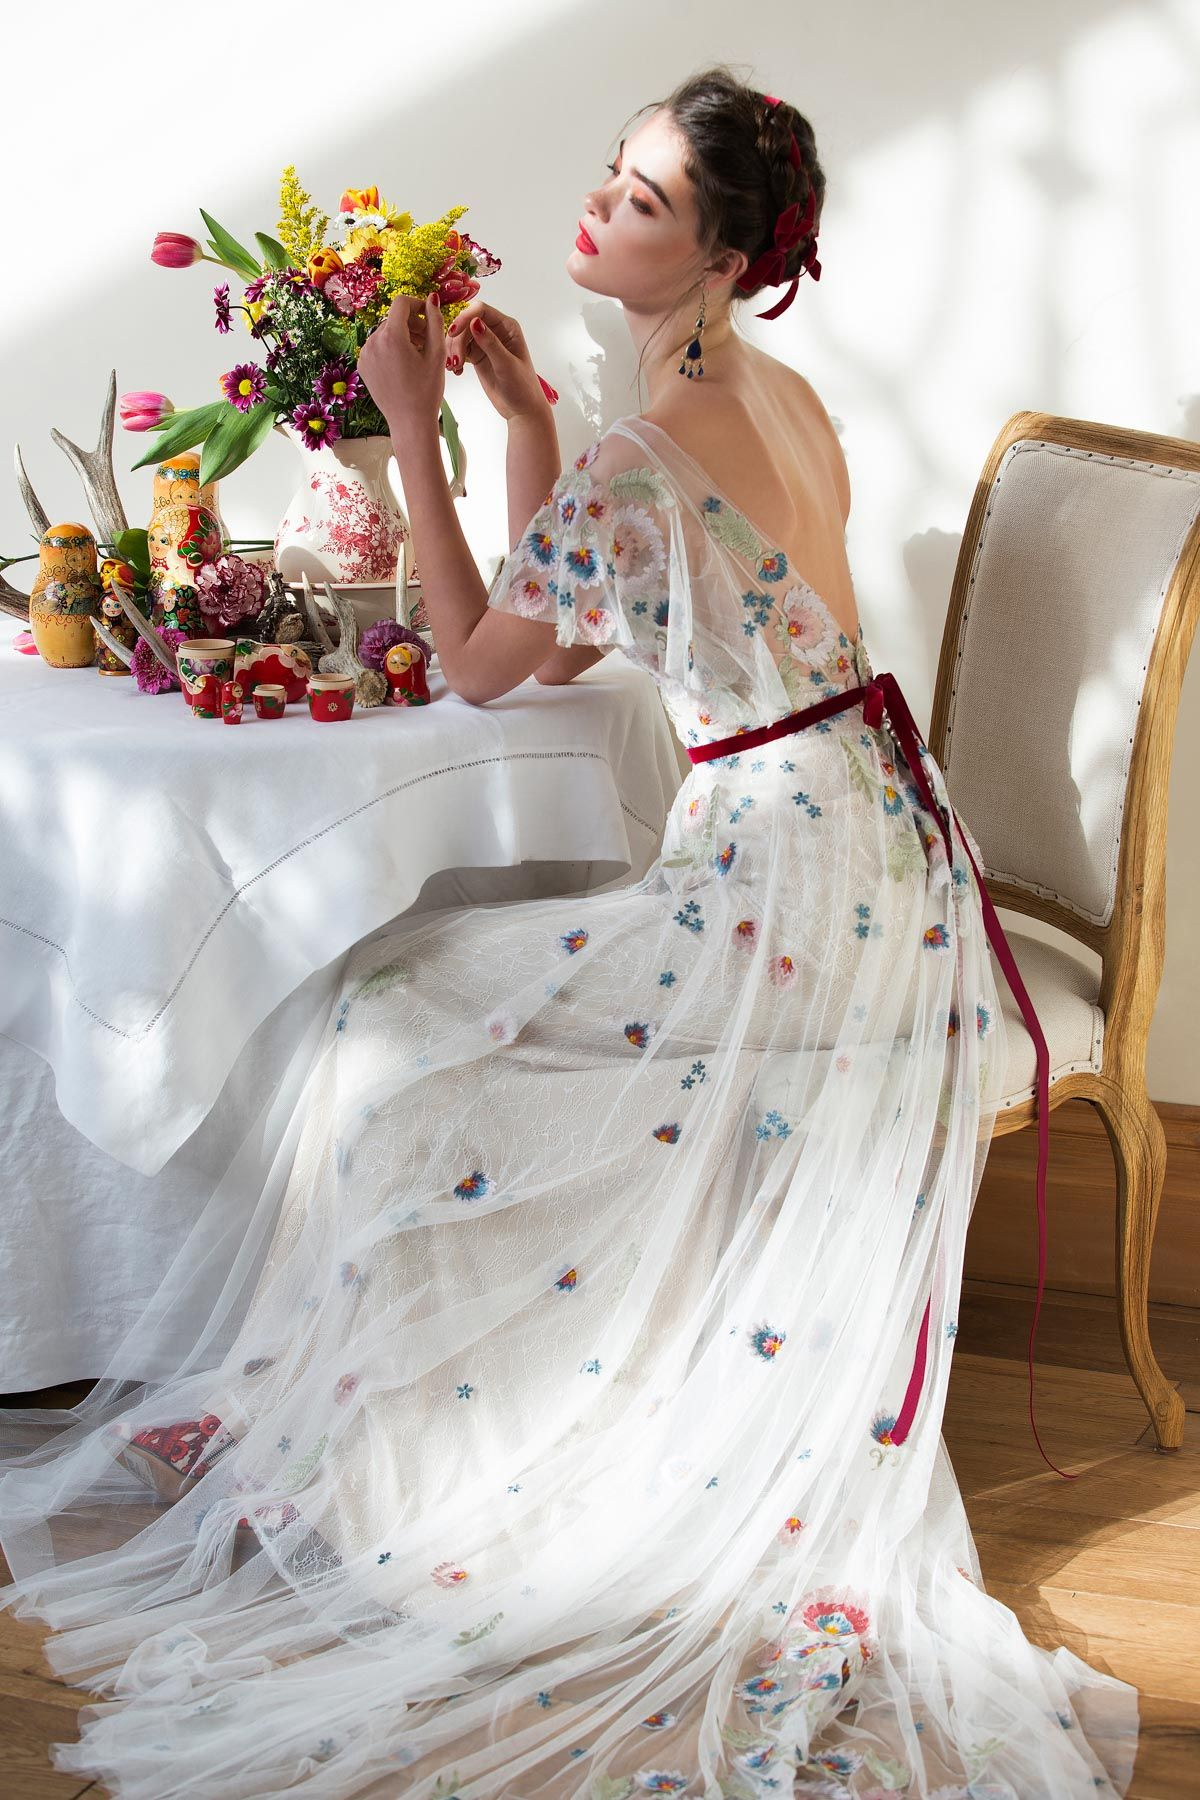 16caae2c91e This gorgeous bridal gown inspired by modern folklore is crafted from  Tillie Chantilly on soft netting. It features an illusion neckline